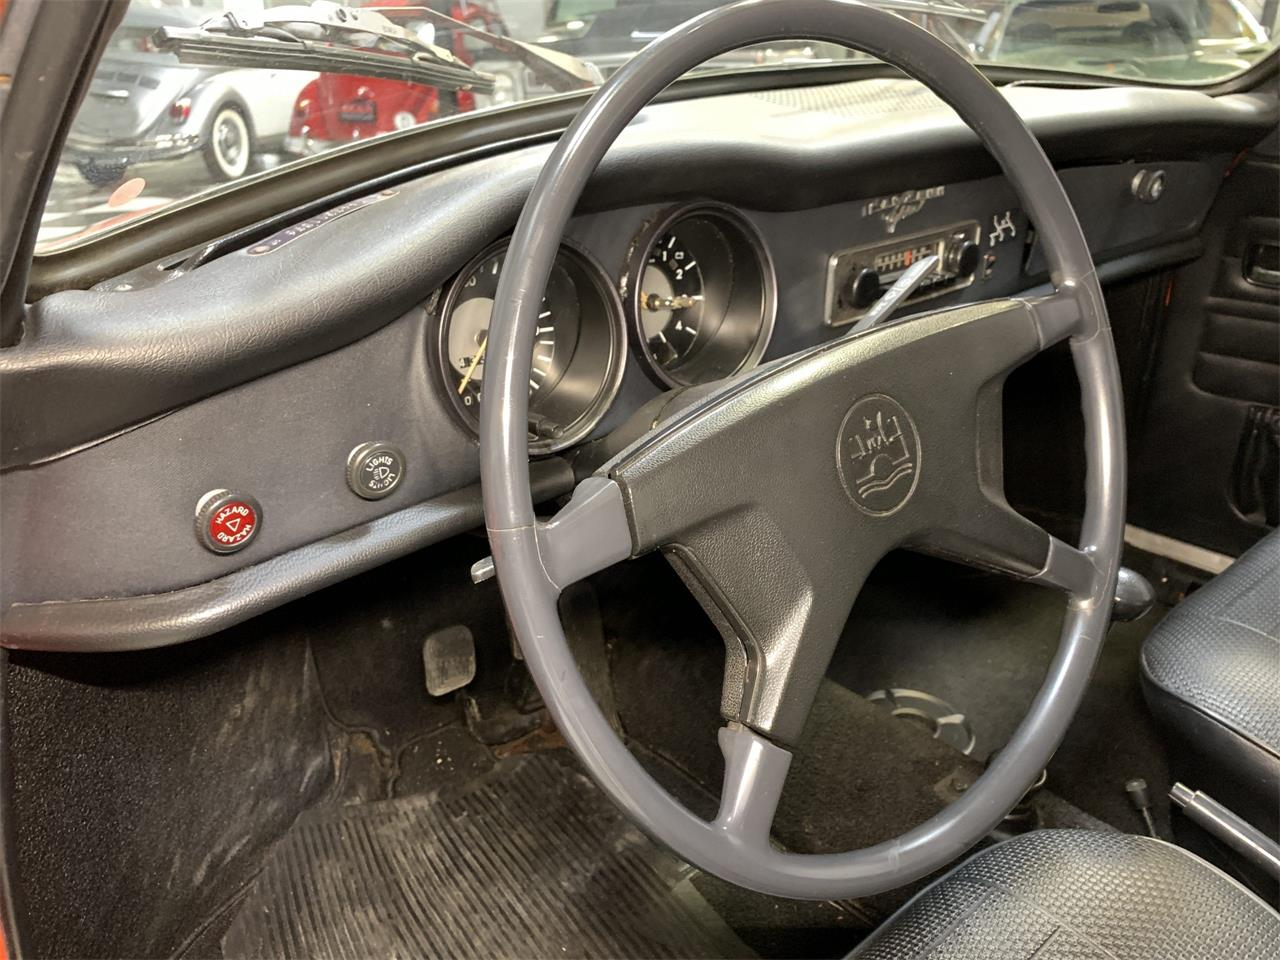 1974 Volkswagen Karmann Ghia for sale in Pittsburgh, PA – photo 36